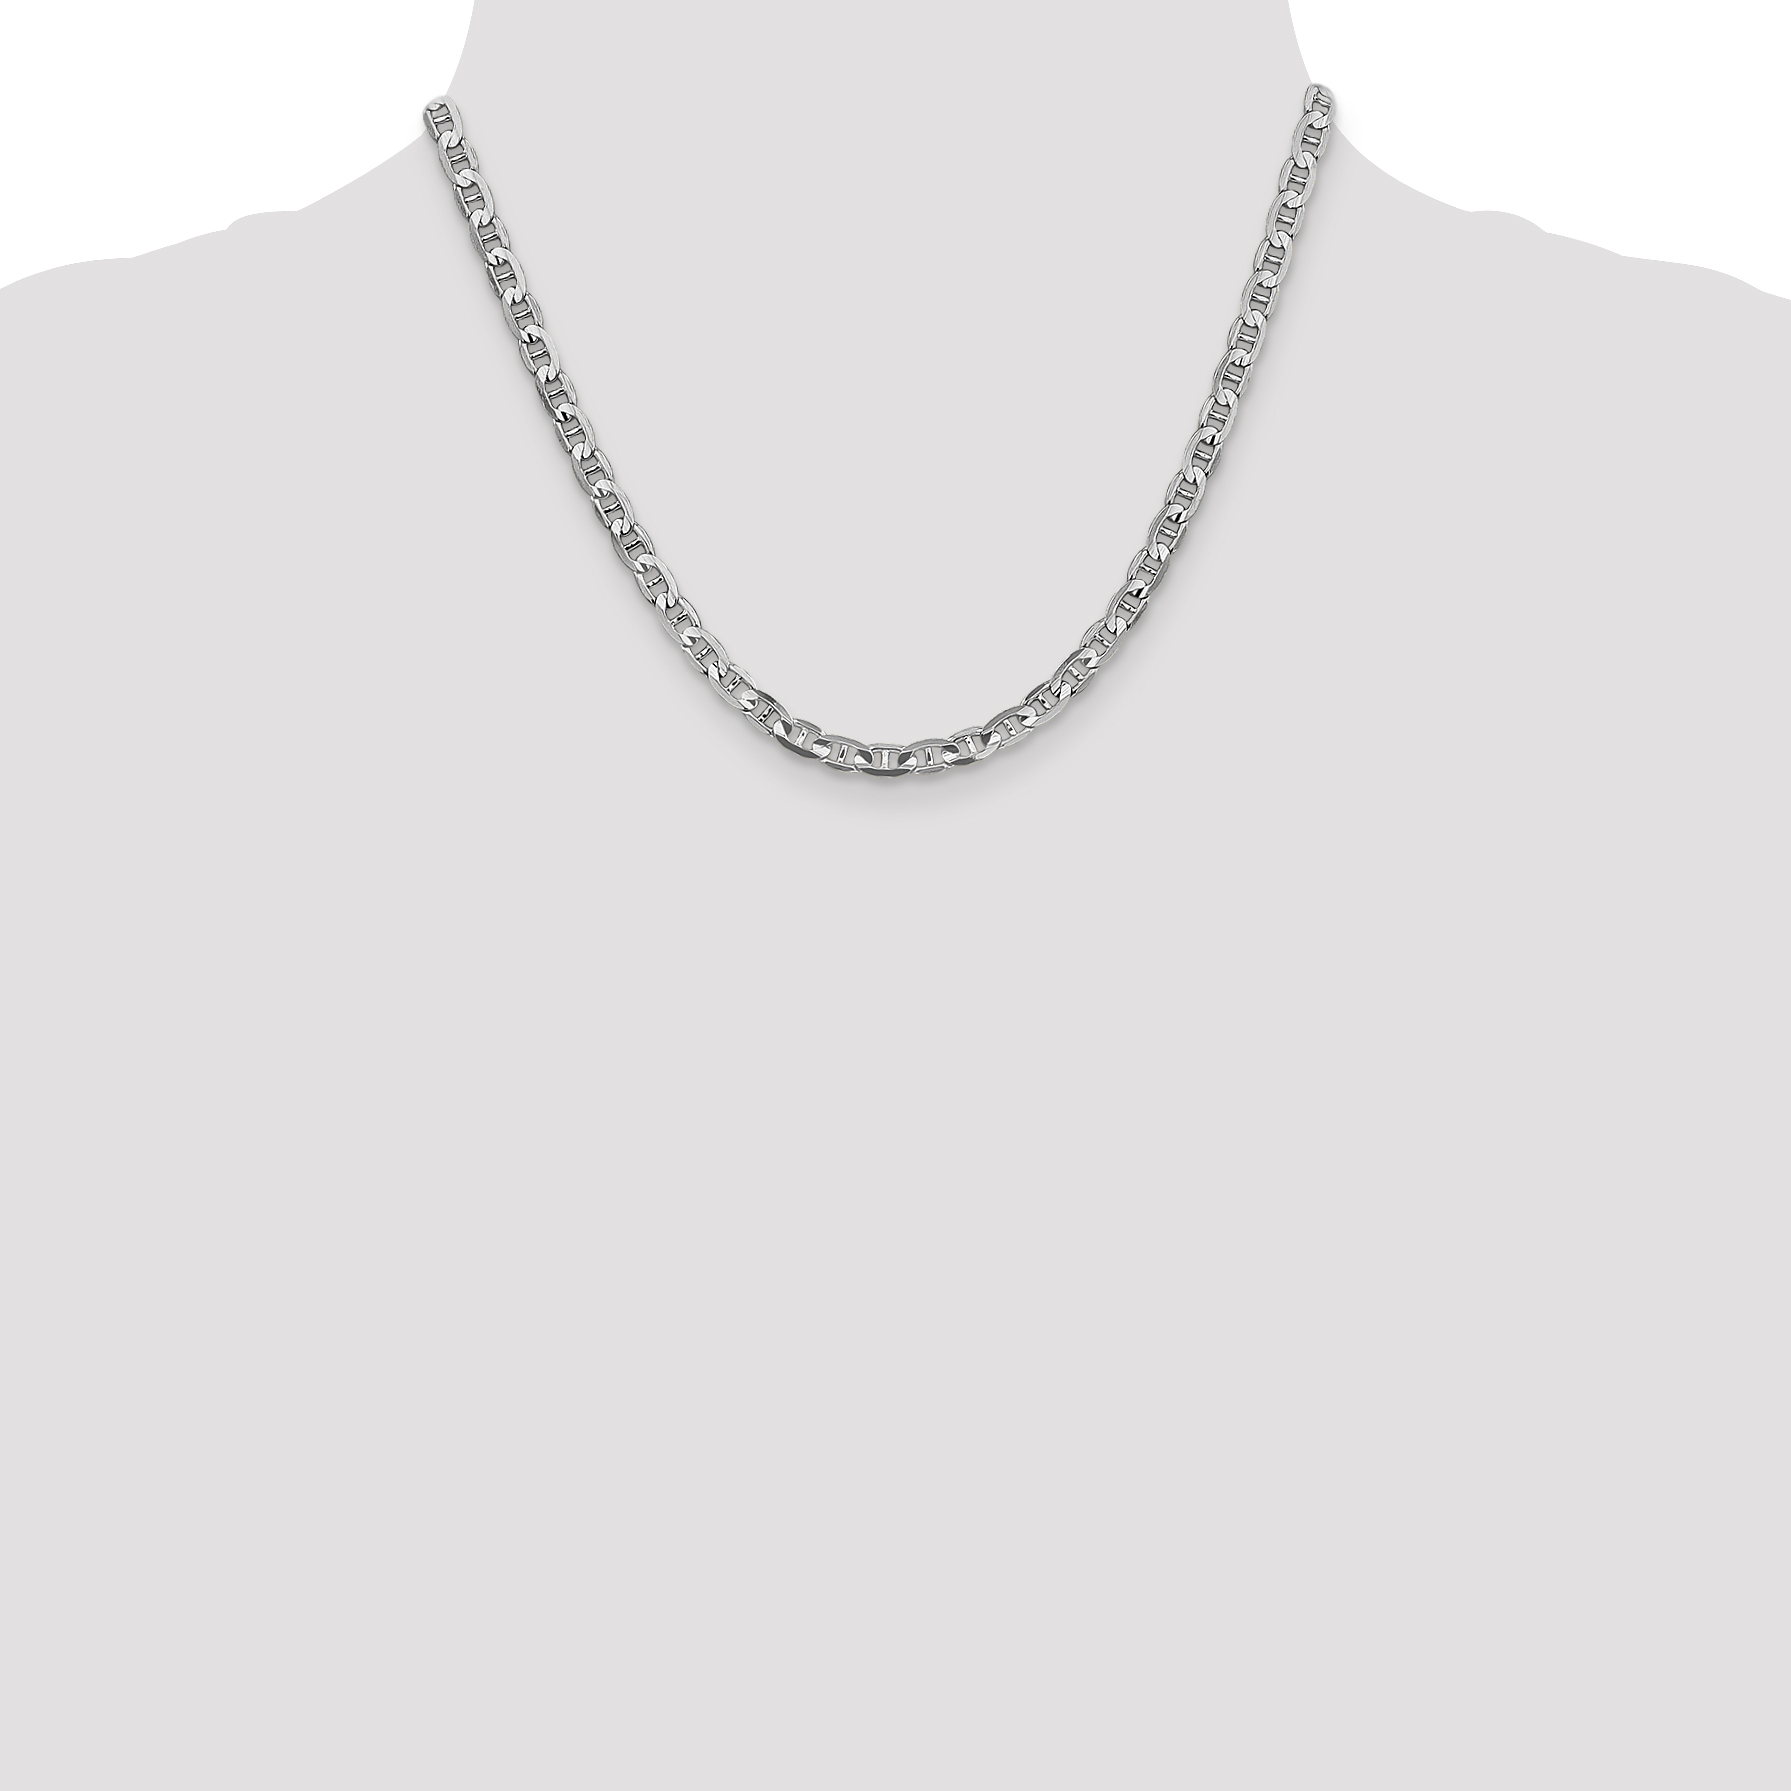 14k White Gold 4.5mm Concave Anchor Necklace Pendant Charm Chain Fine Jewelry Gifts For Women For Her - image 2 de 5